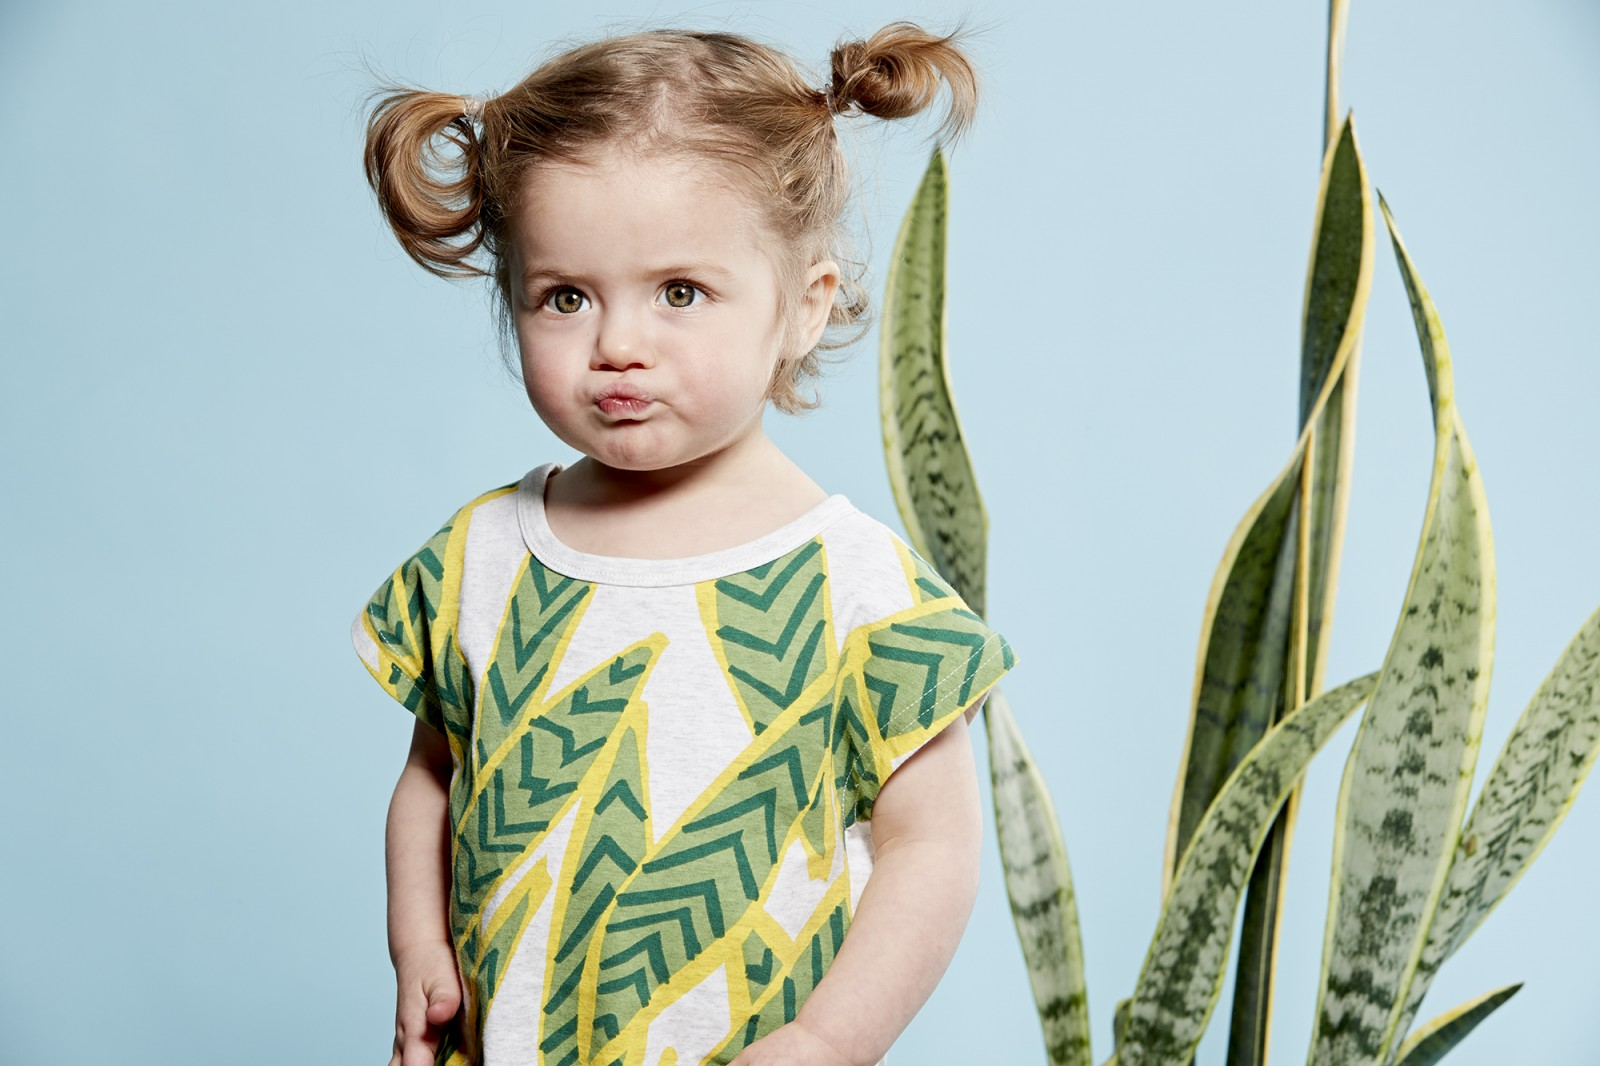 Andie photographed for Tiny Tribe Fashion pages by Michelle Young, kids fashion and lifestyle photographer. Shot in studio.